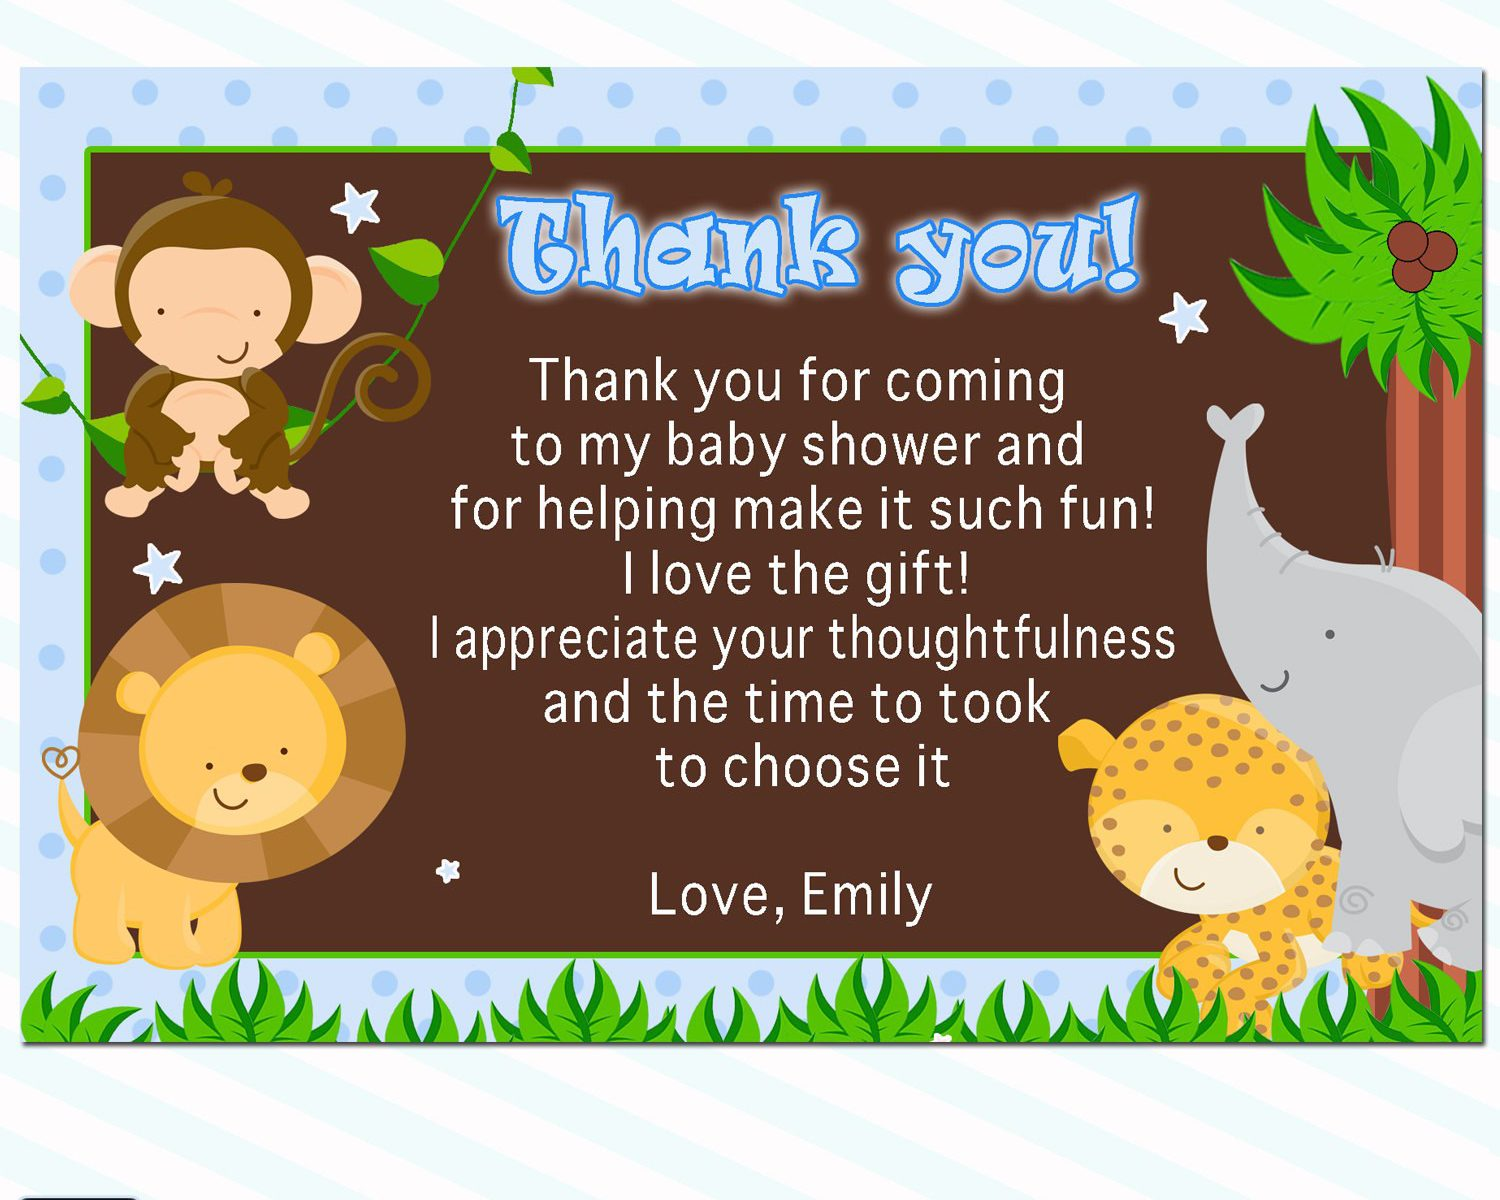 Full Size of Baby Shower:72+ Rousing Baby Shower Thank You Cards Picture Ideas Baby Shower Thank You Cards Etiquette New Notes Forifts Write Baby Shower Thank You Letter Choice Image Format Formal Sample Good Notes For Gifts Ideas 1600